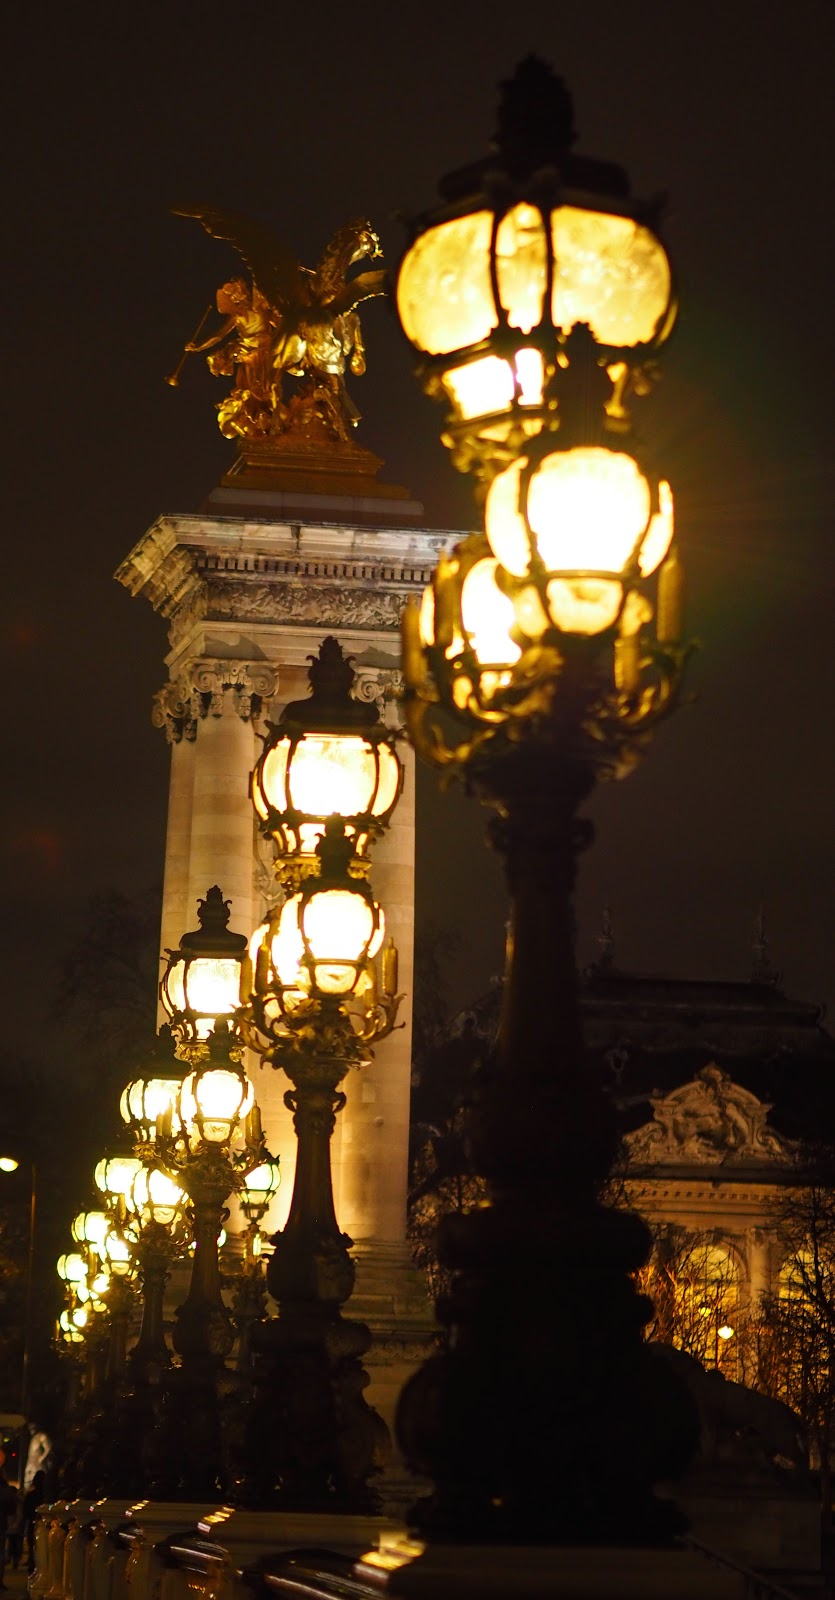 Paris lights at night